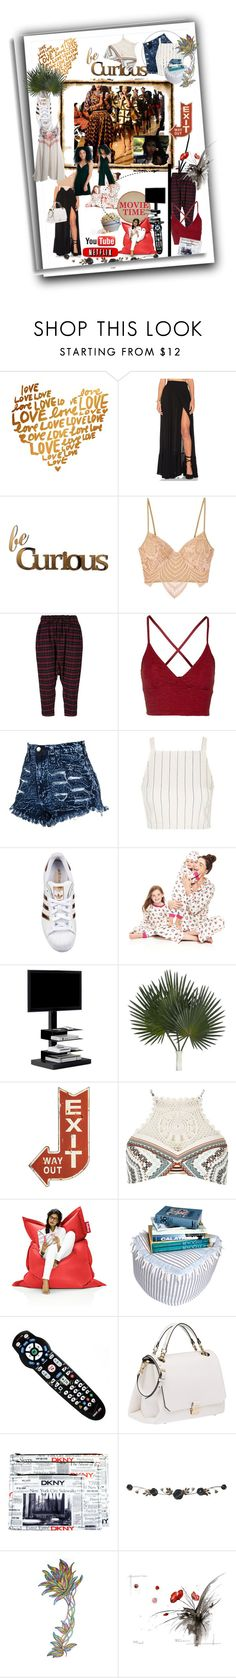 """Conley_ esperanzaj-brownshuga"" by conley-esperanzaj1957 ❤ liked on Polyvore featuring Wildfox, Letter2Word, For Love & Lemons, Arts & Science, Topshop, adidas Originals, Bed Head by TIGI, Waring, Opinion Ciatti and Dot & Bo"